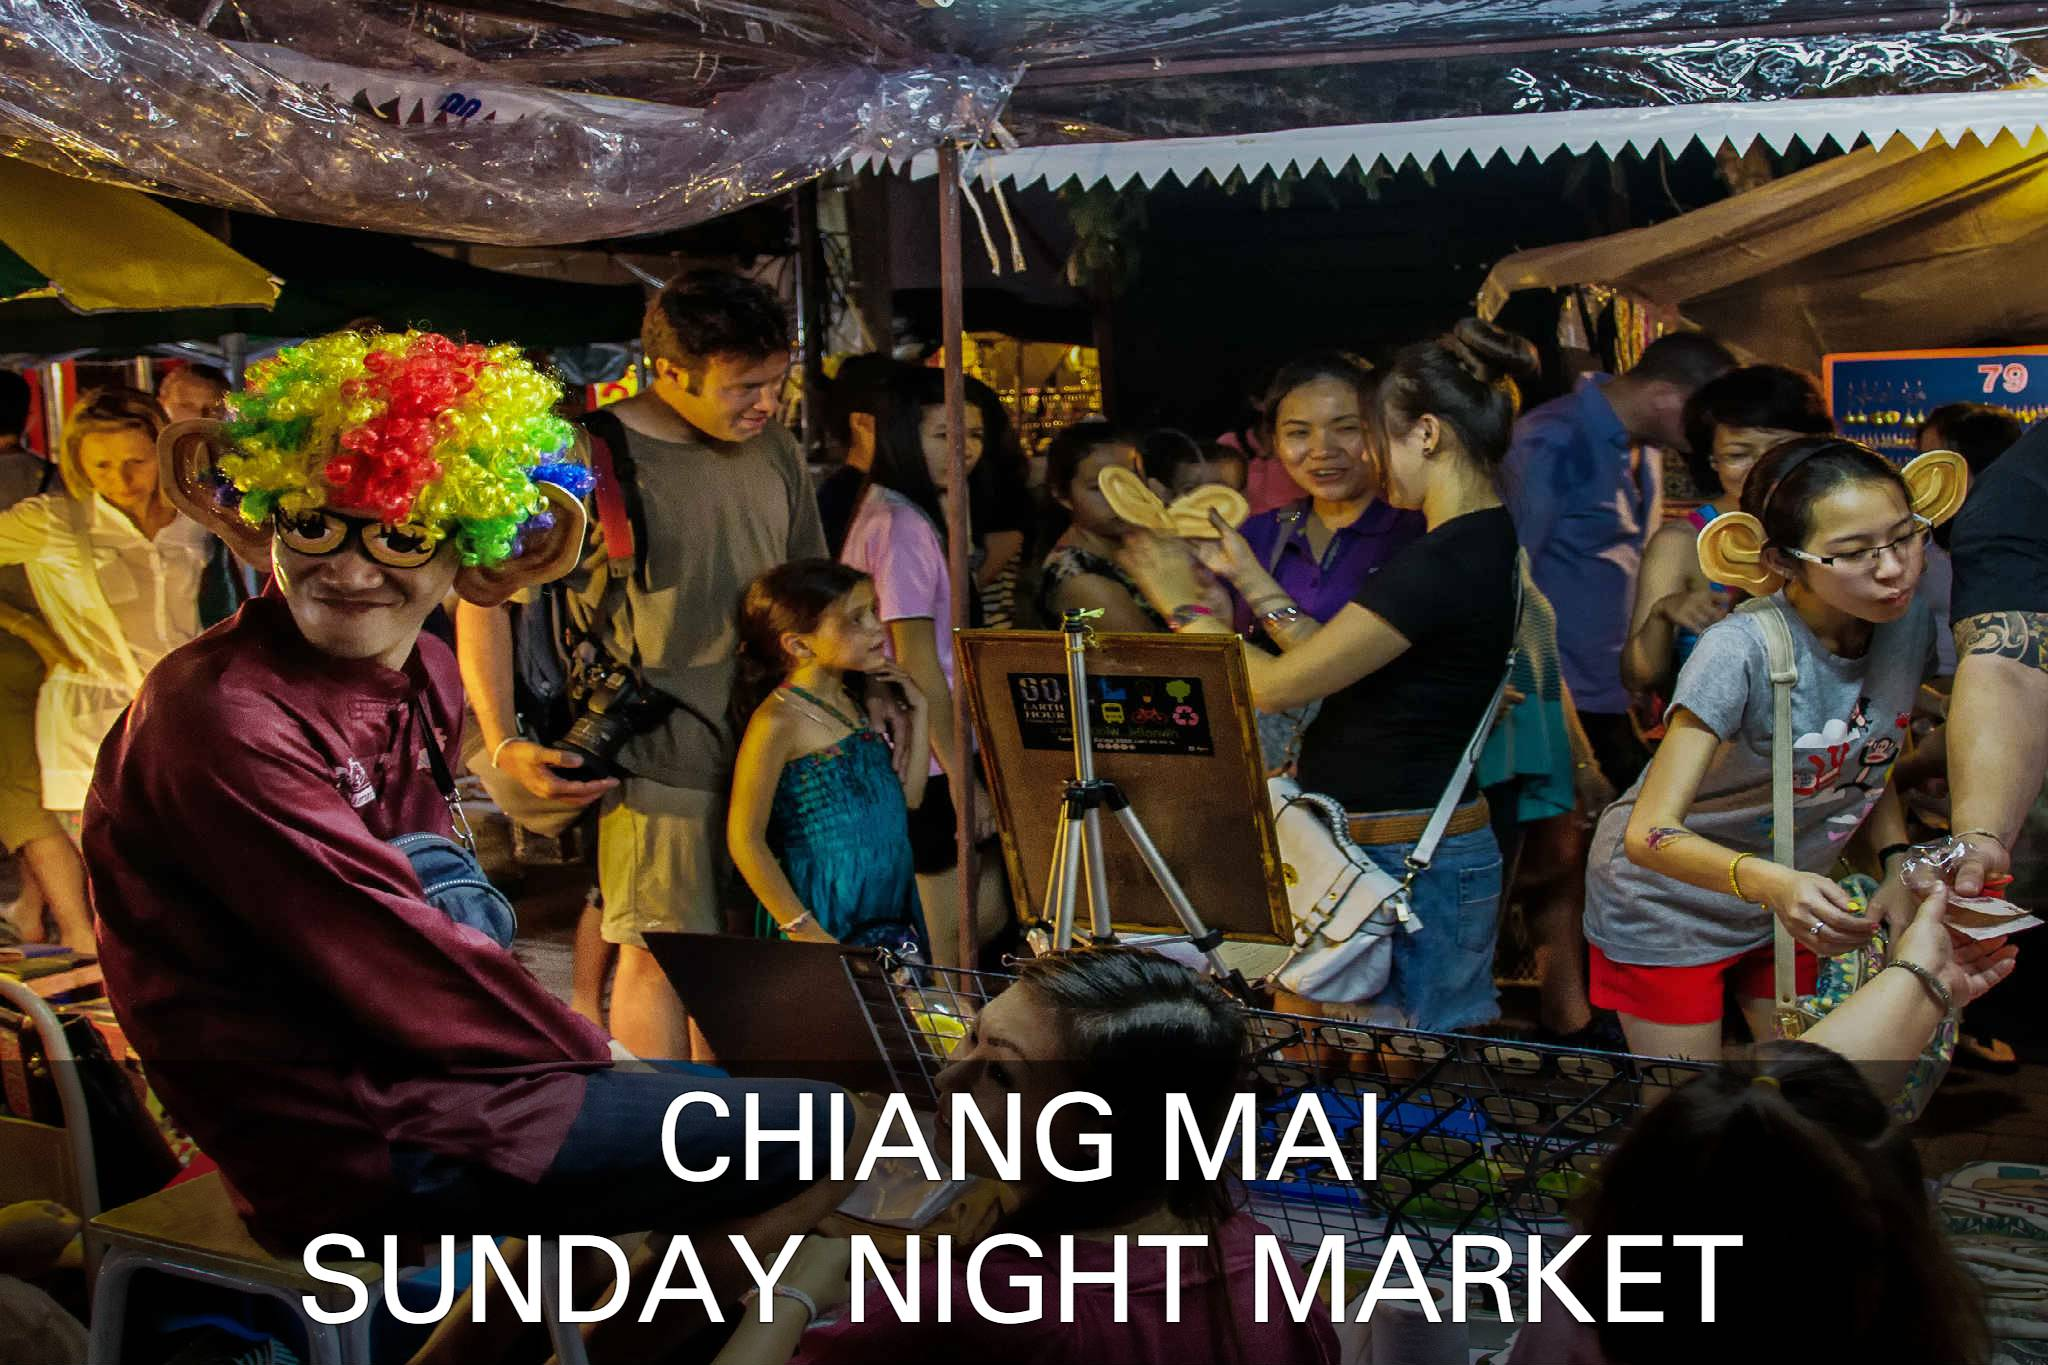 Sunaday Night Market In Chiang Mai, Thailand